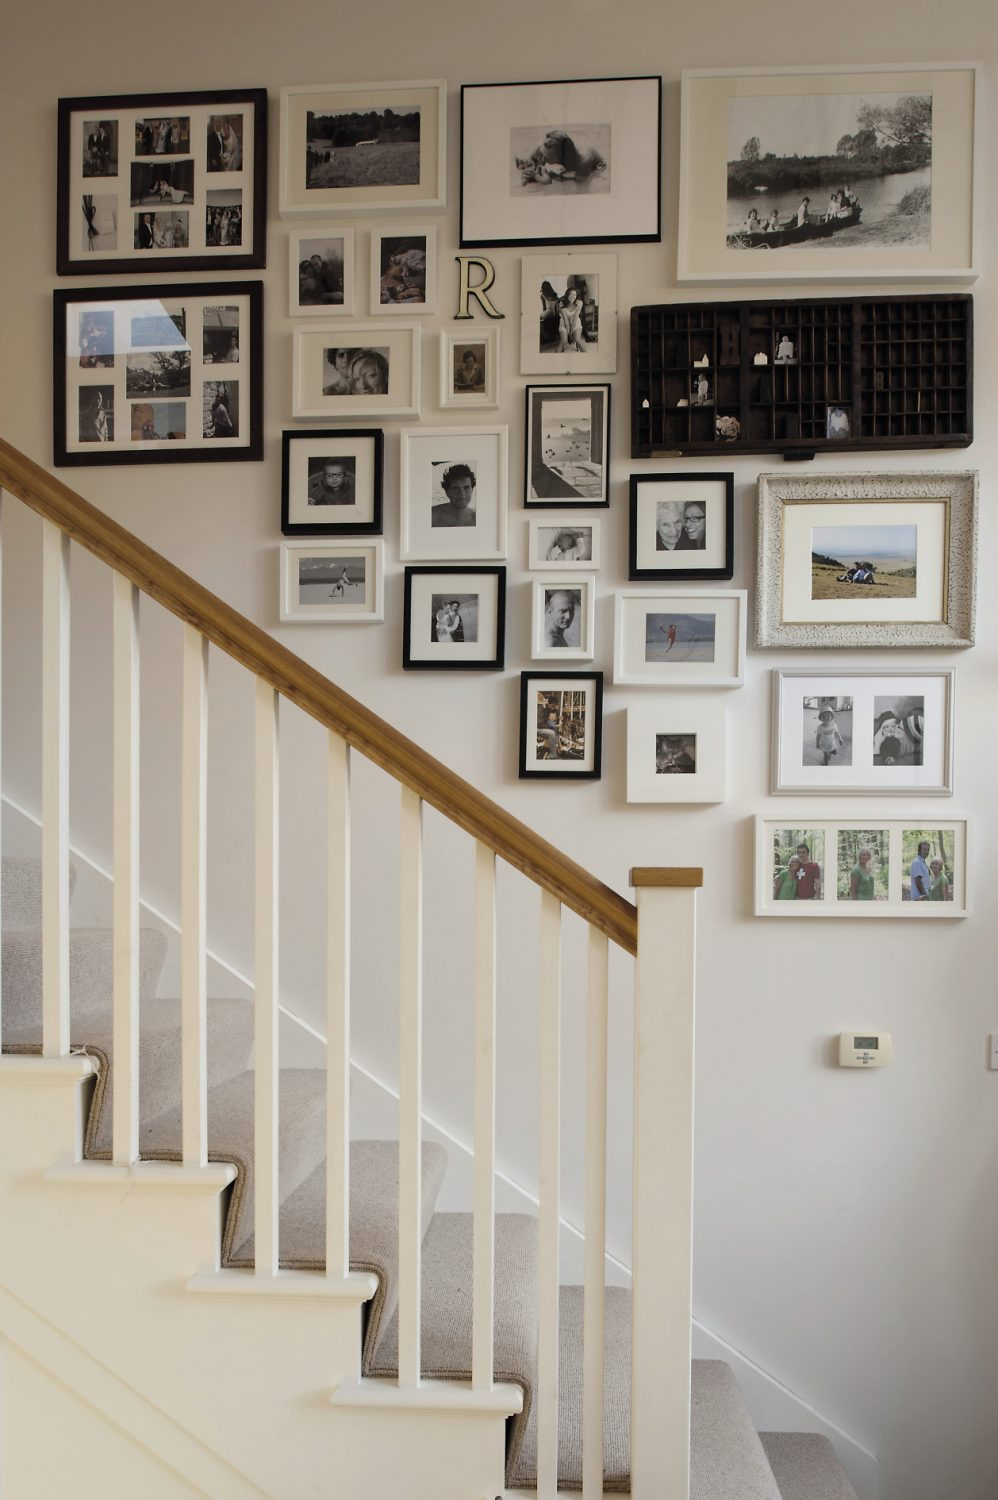 A wide array of family photographs line the ascent up the staircase